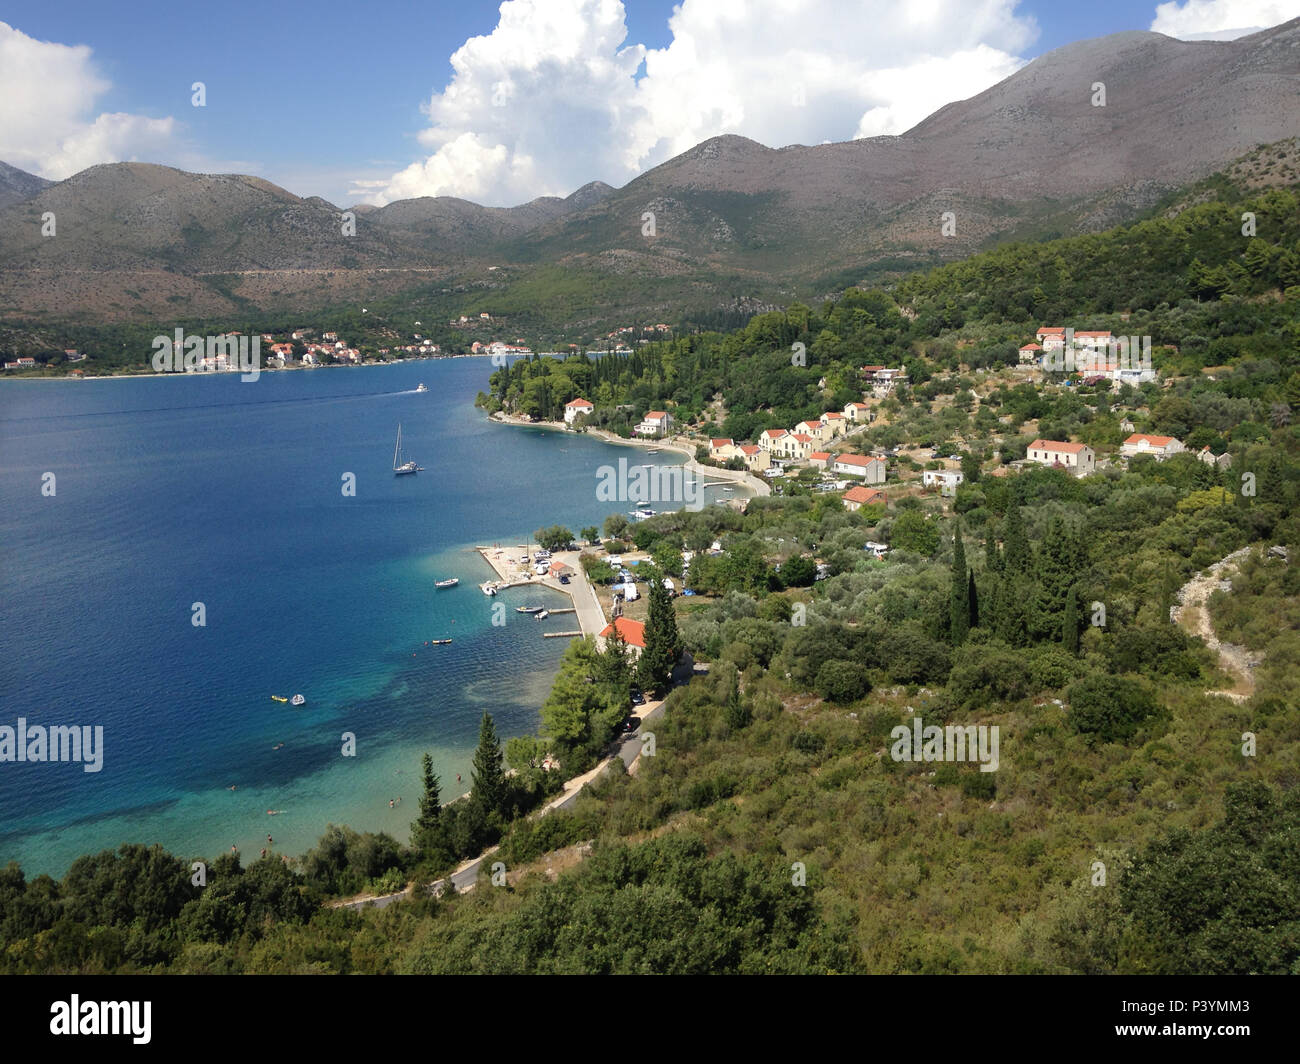 panoramic view of Mediterranean coastal holiday accommodations, Dubrovnik, Dalmatia, Croatia, Europe. Stock Photo